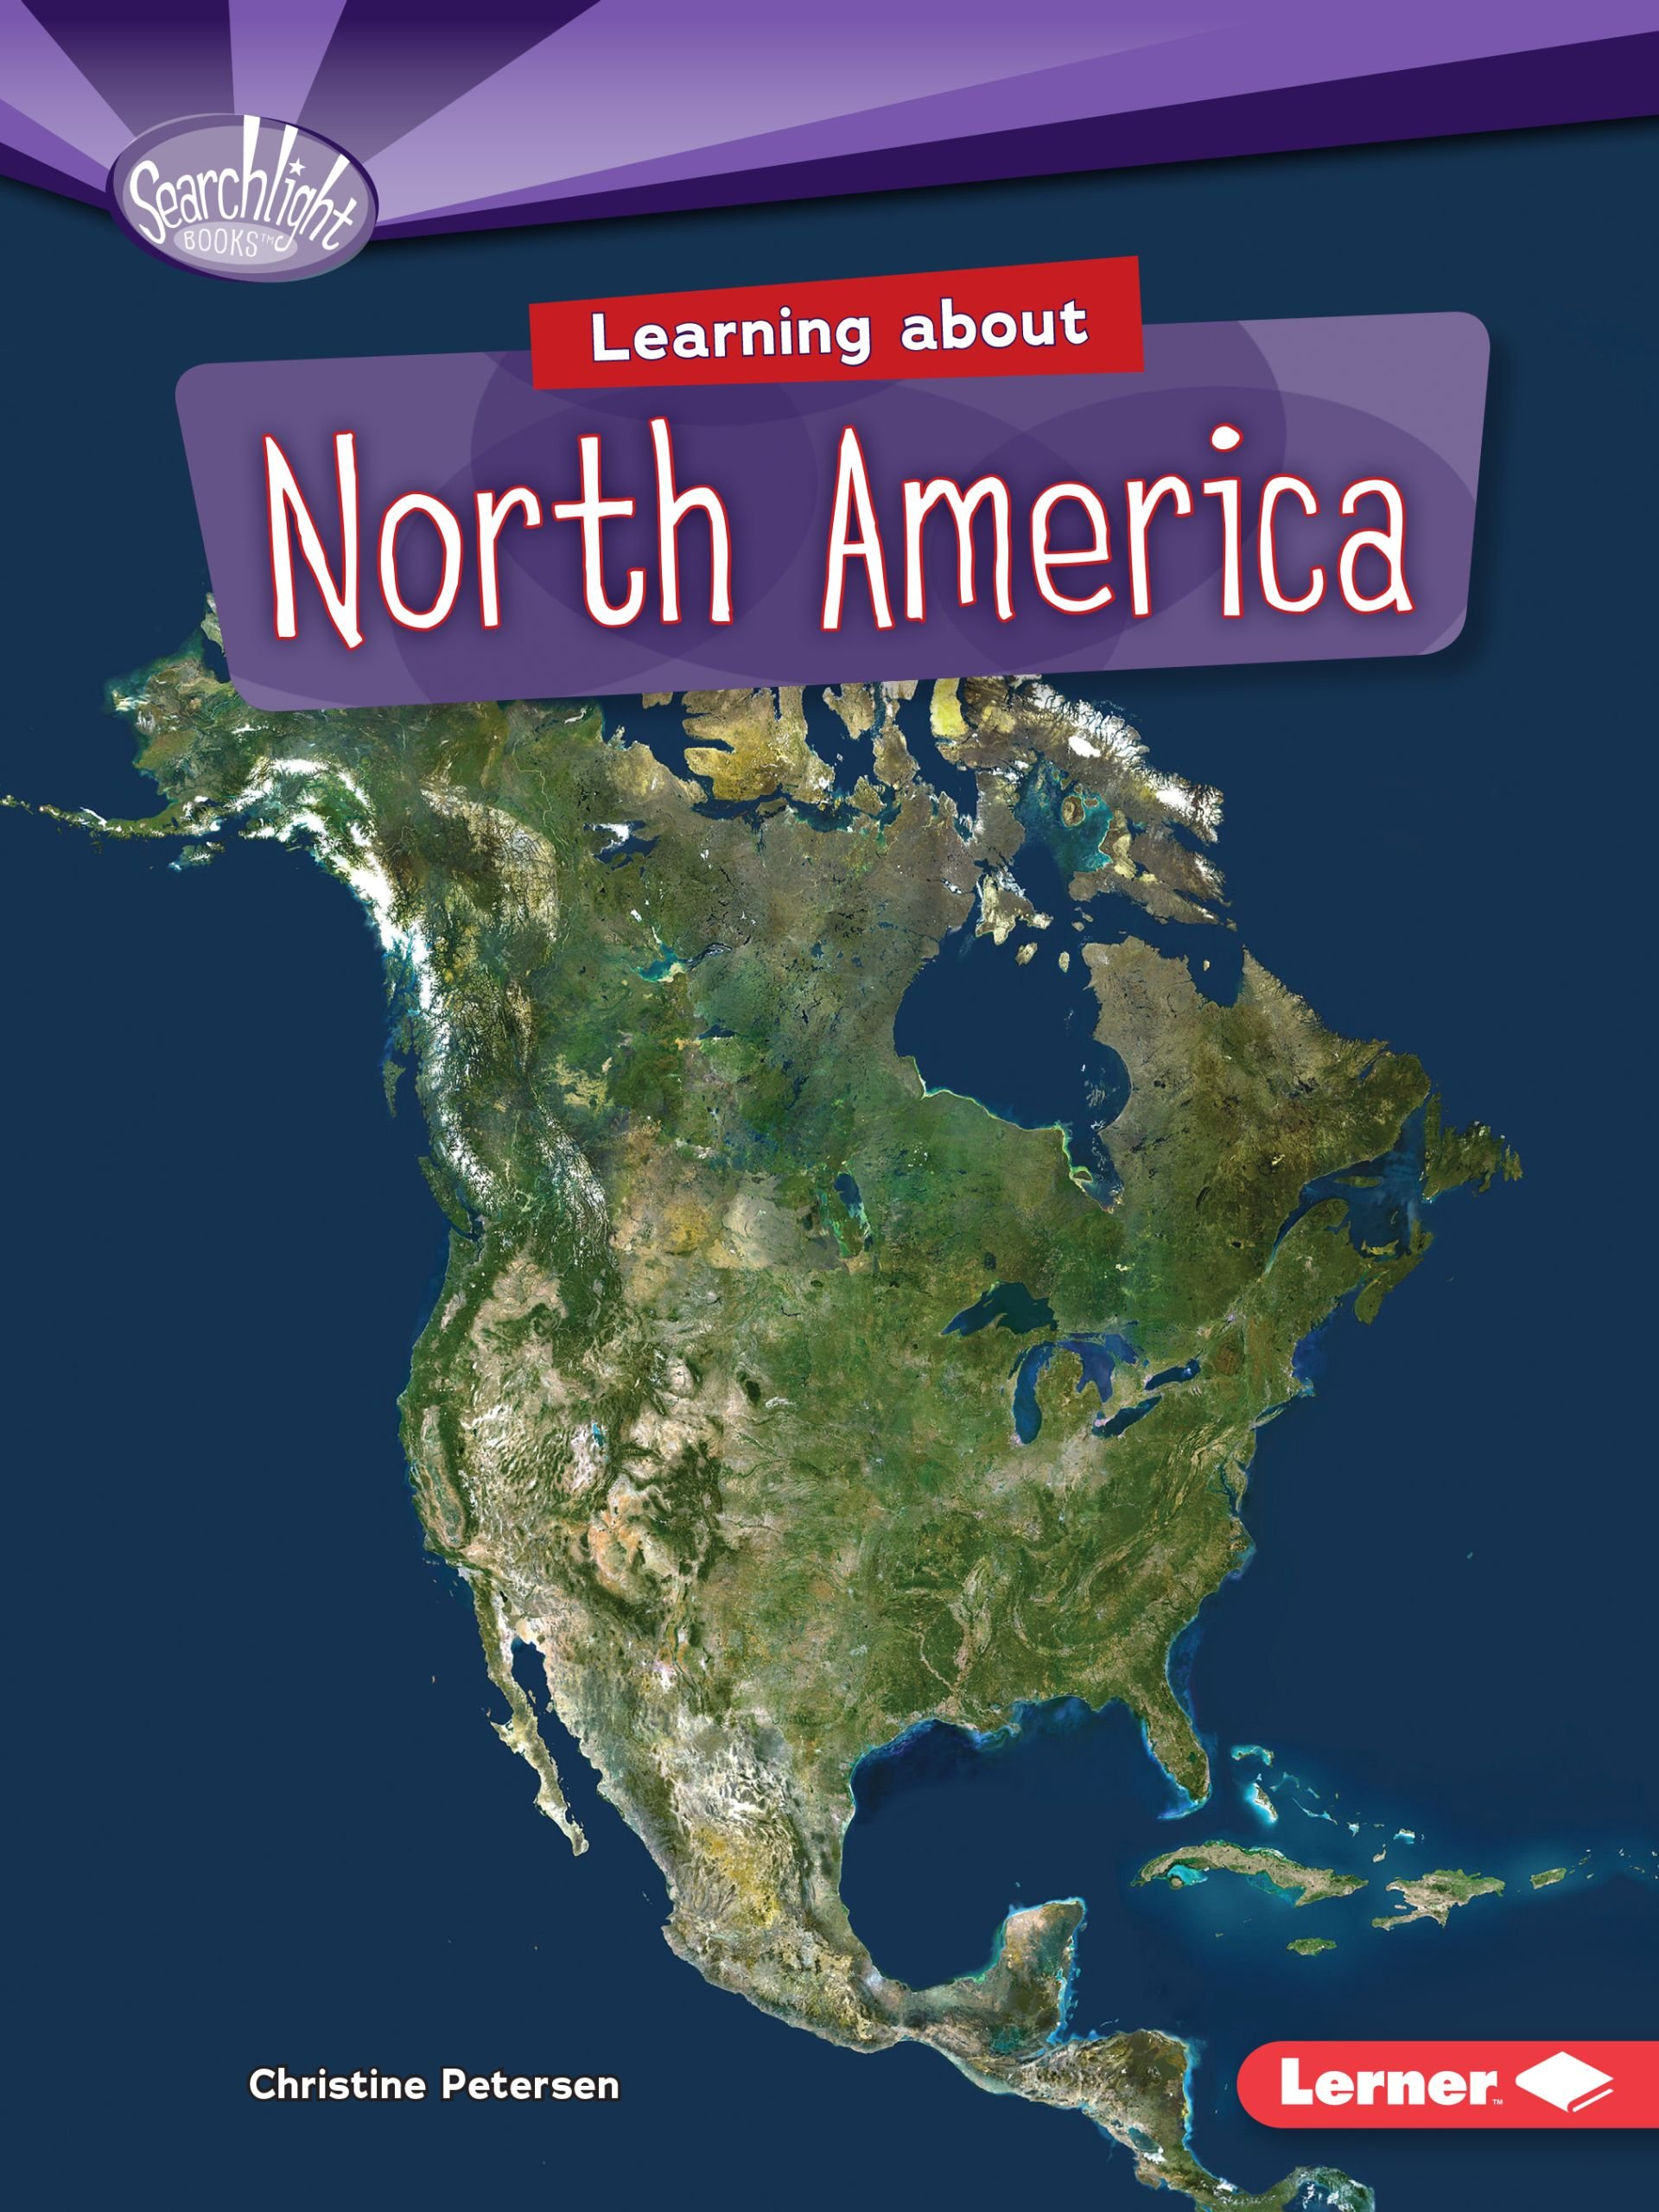 Learning About North America (Searchlight Books) (Searchlight Books: Do You Know the Continents?) PDF